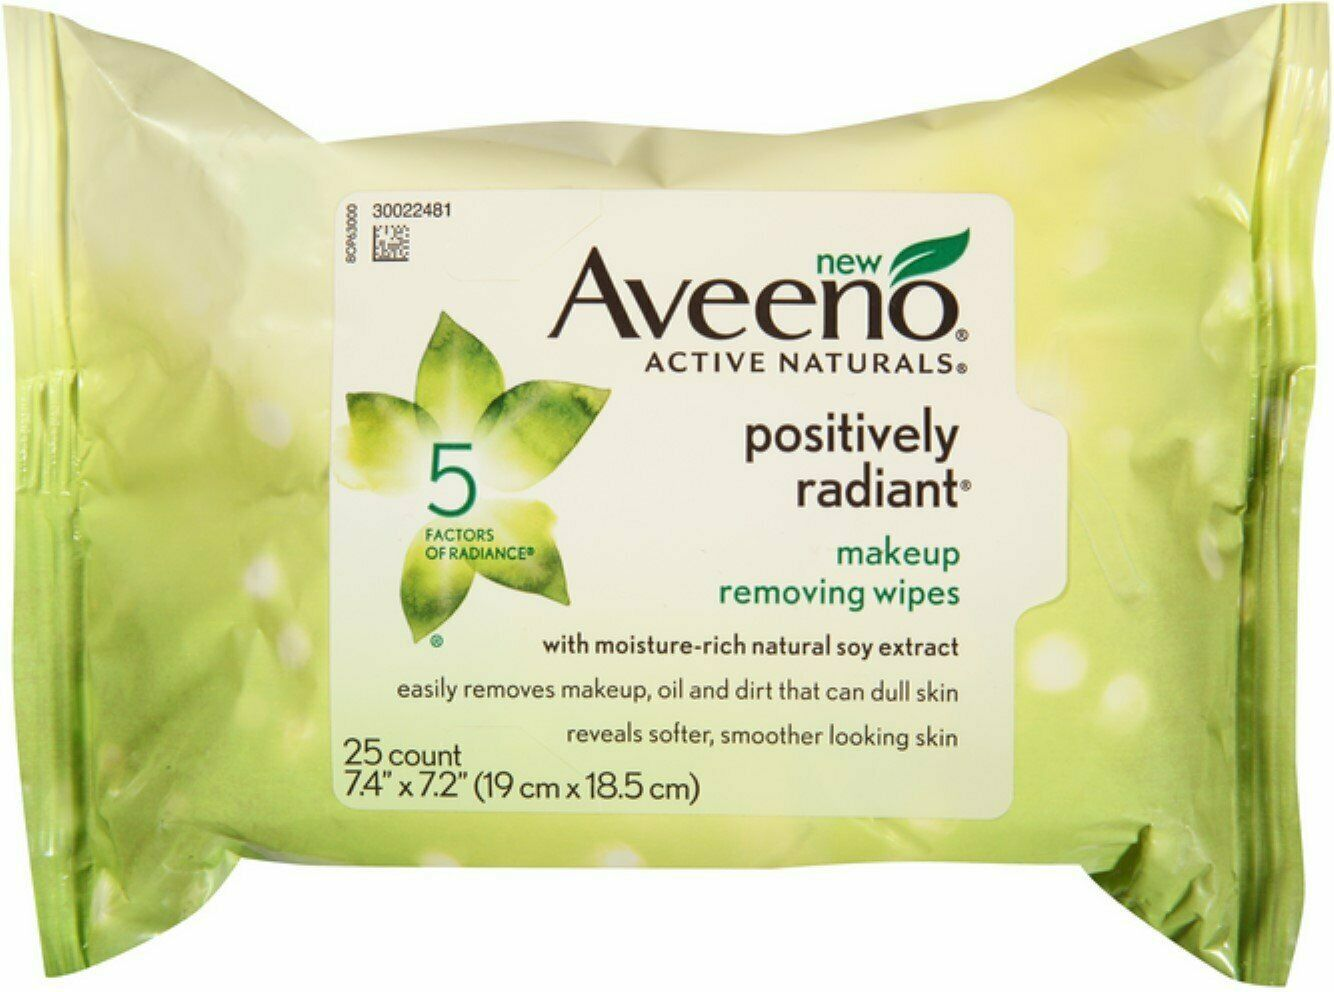 LOT OF 4 - AVEENO Active Naturals Positively Radiant Makeup Wipes, 25 each - $29.65